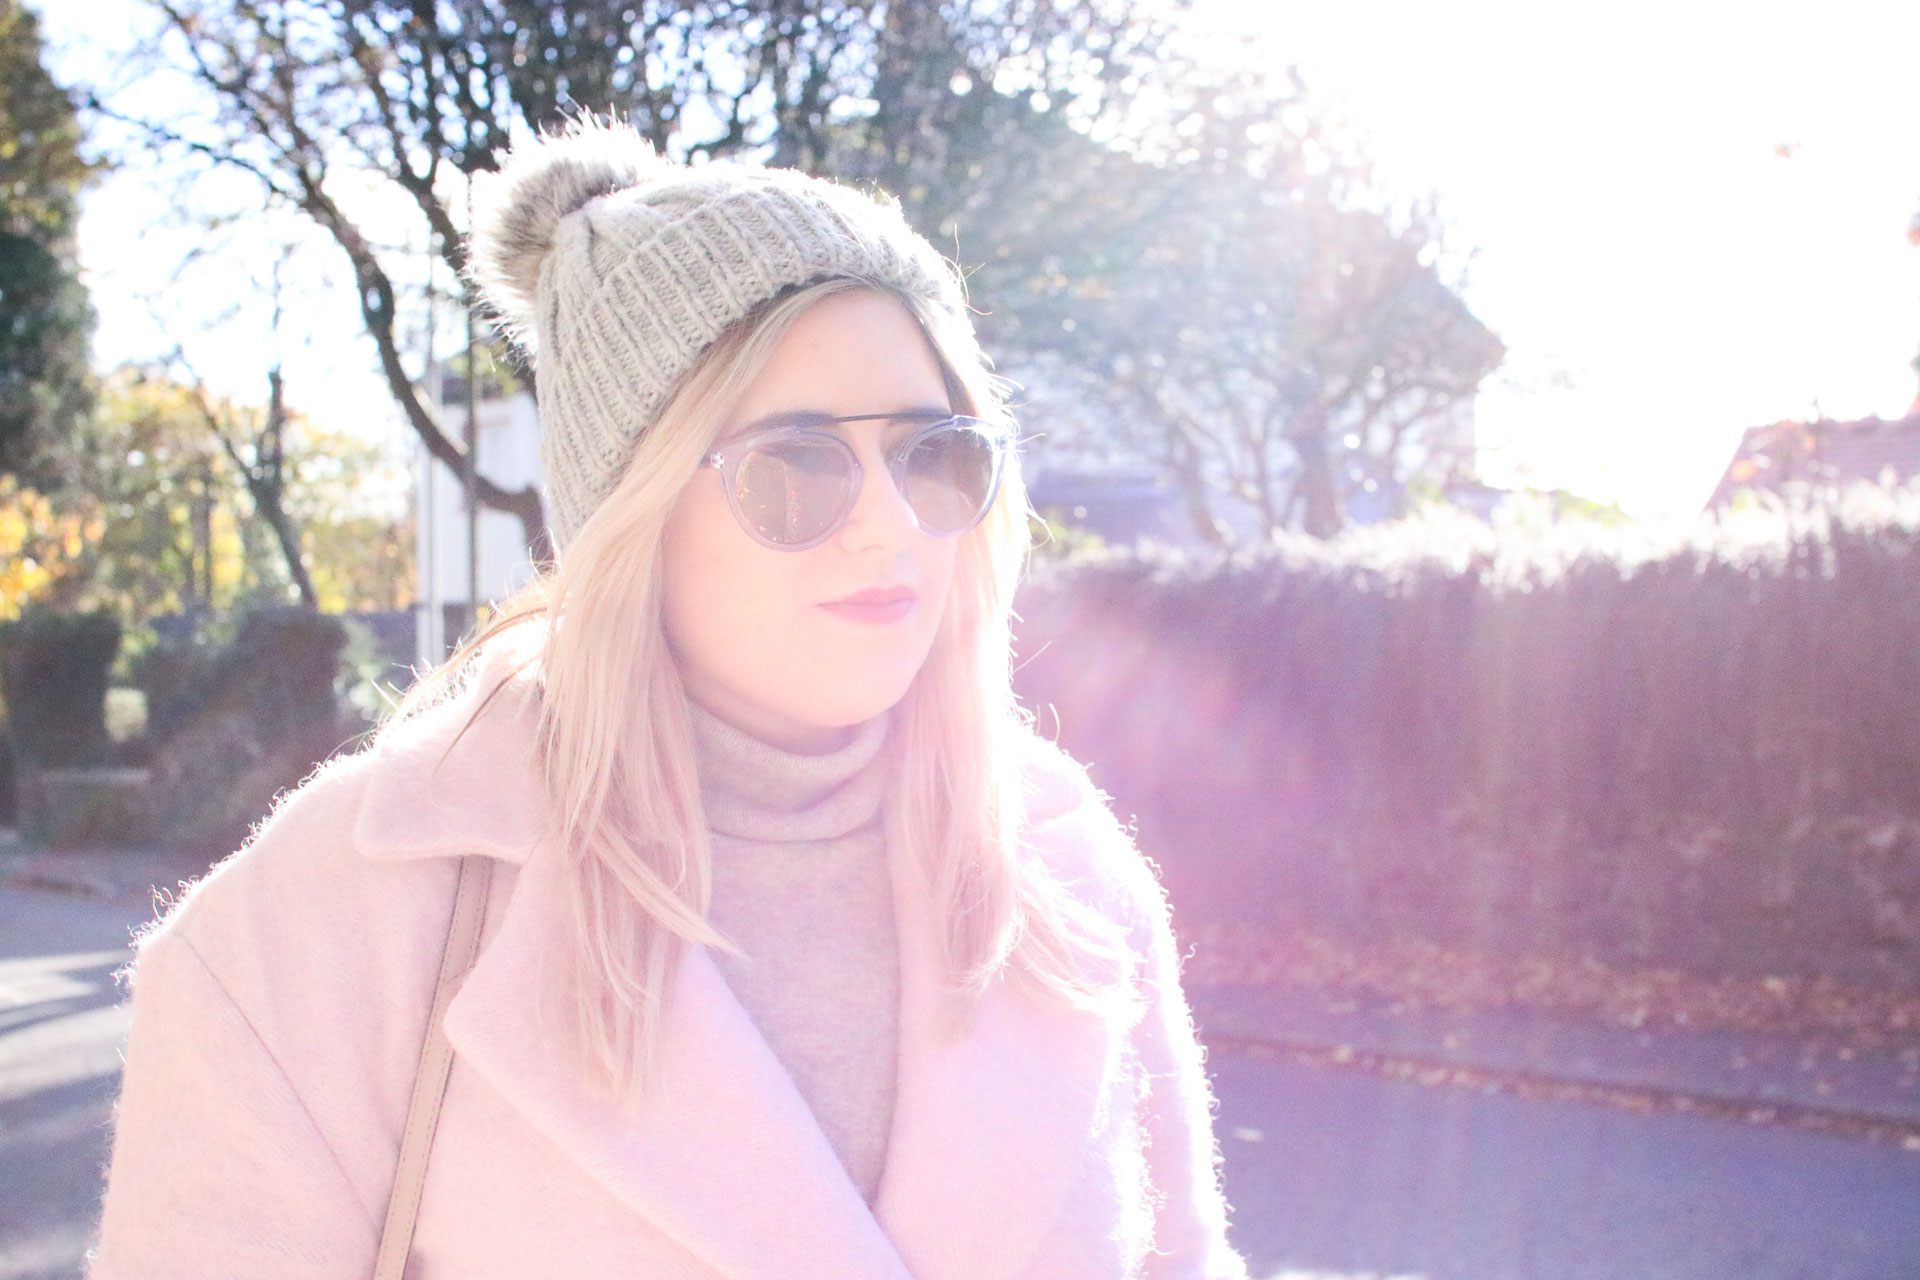 pink coat winter outfit autumn warm